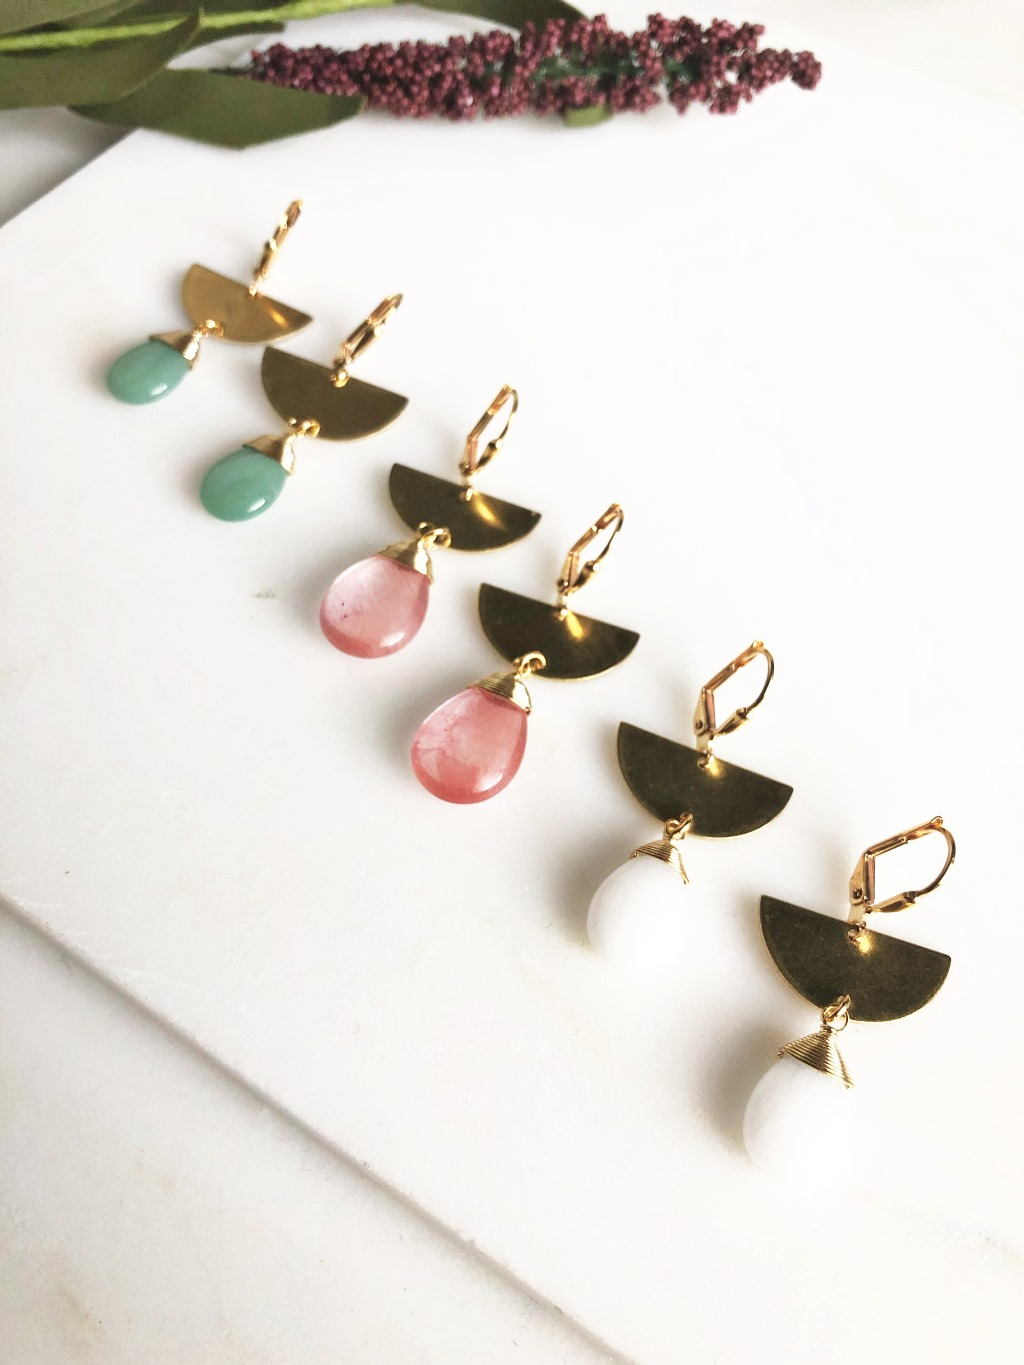 Sweet colorful half moon and teardrop earrings. Ear wire is gold plated brass.